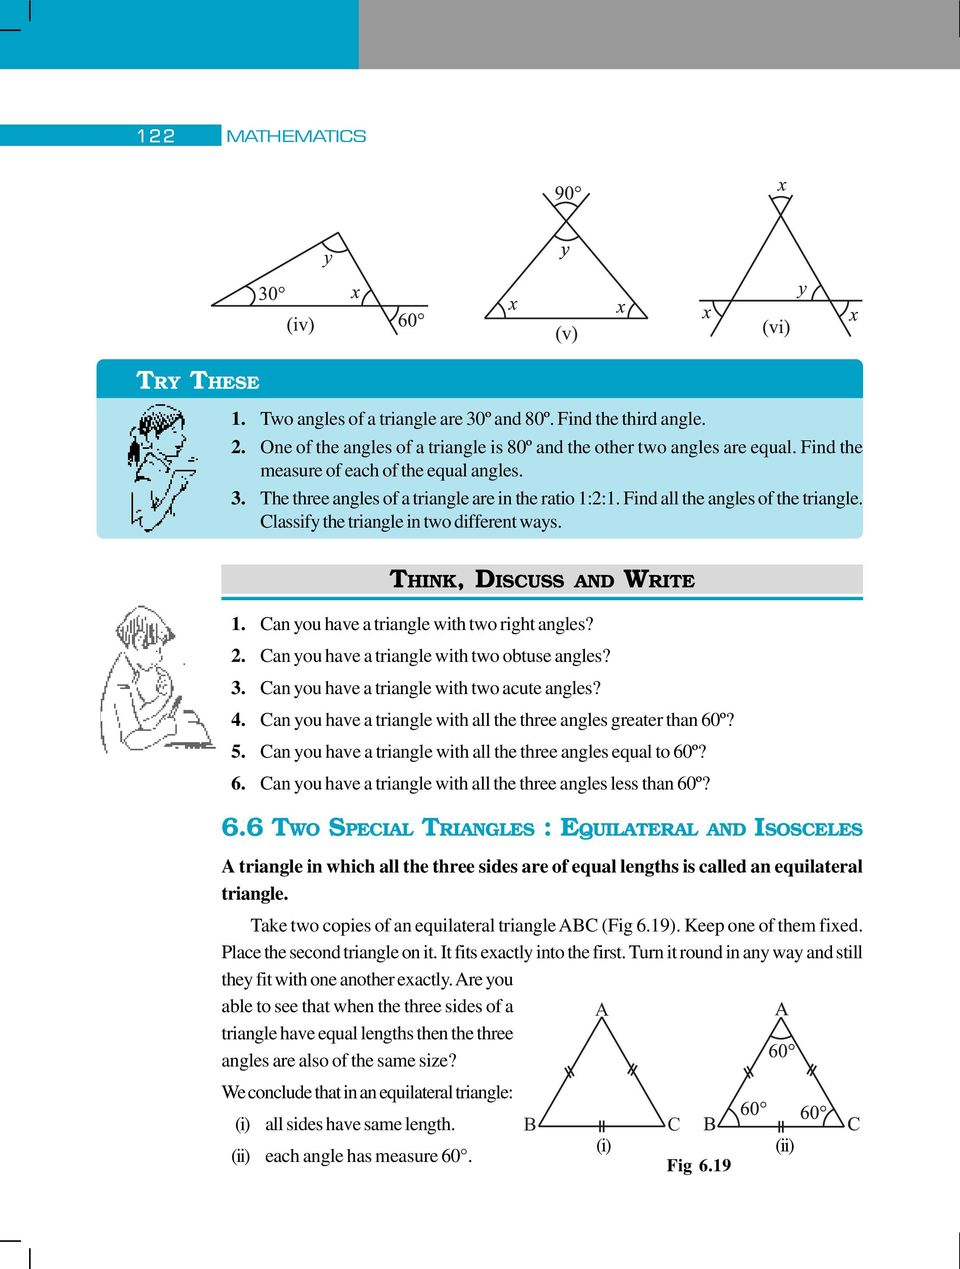 The Triangle and its Properties - PDF